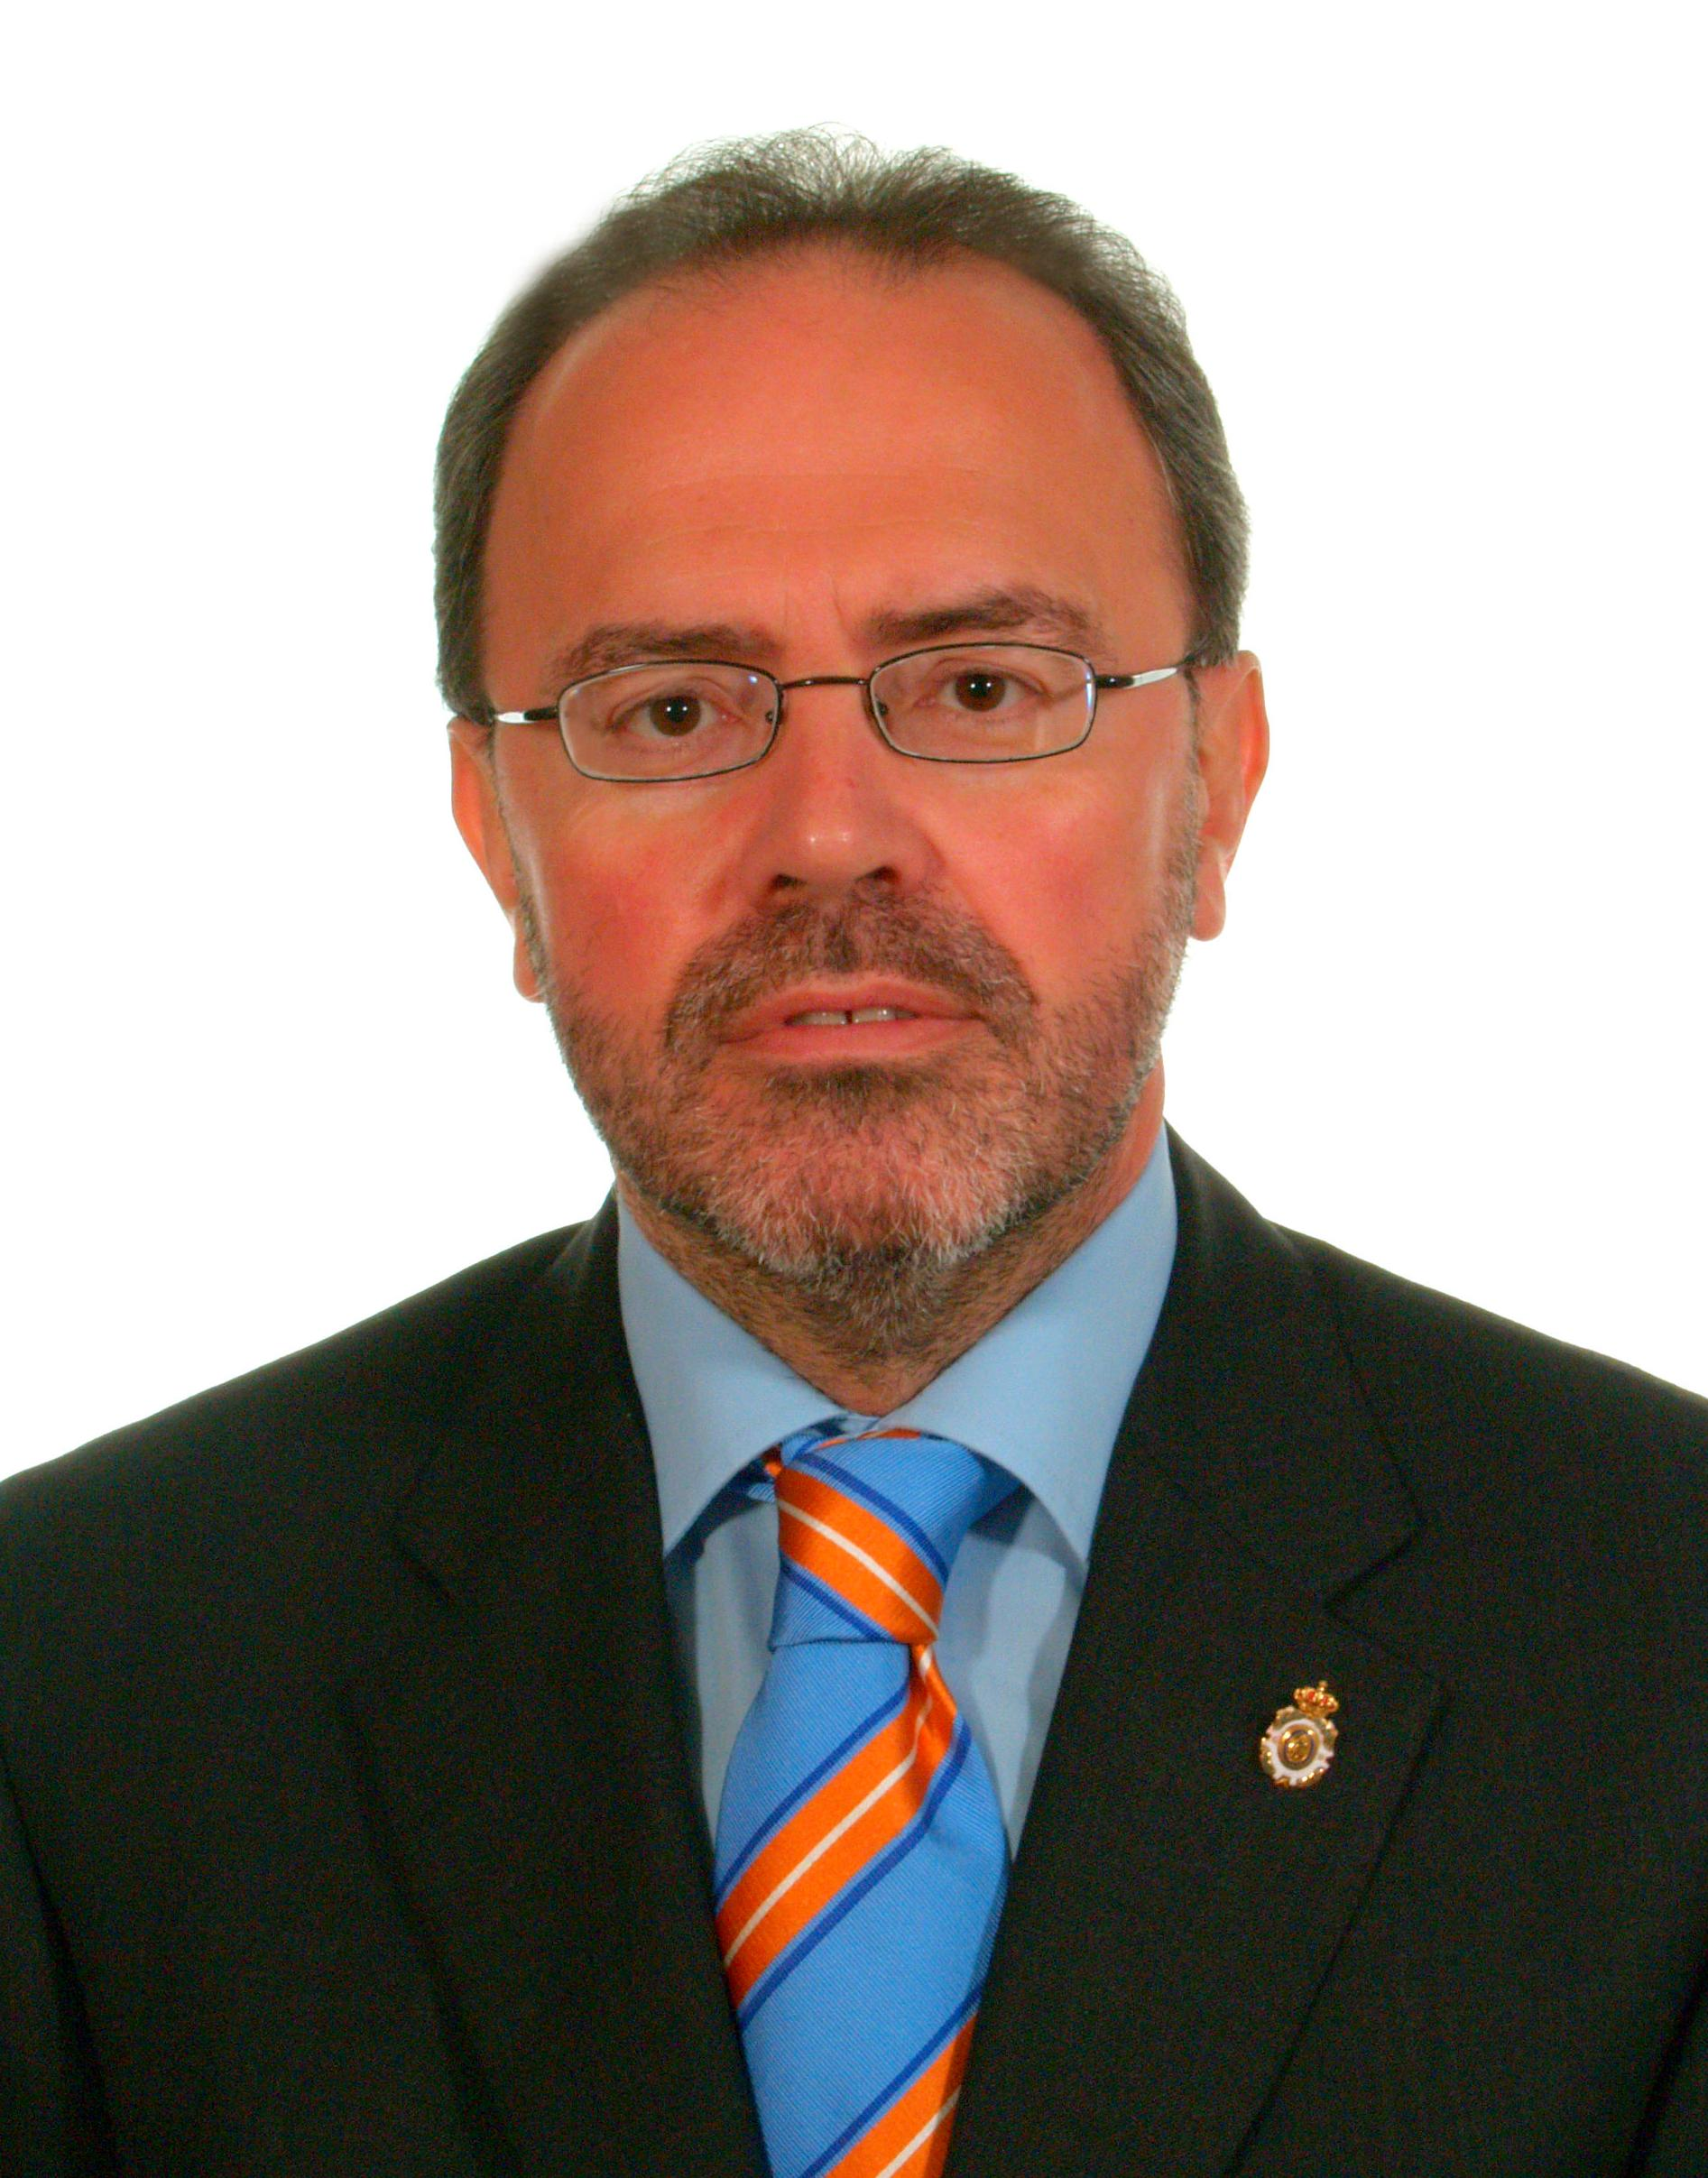 Dr. Torre Alonso